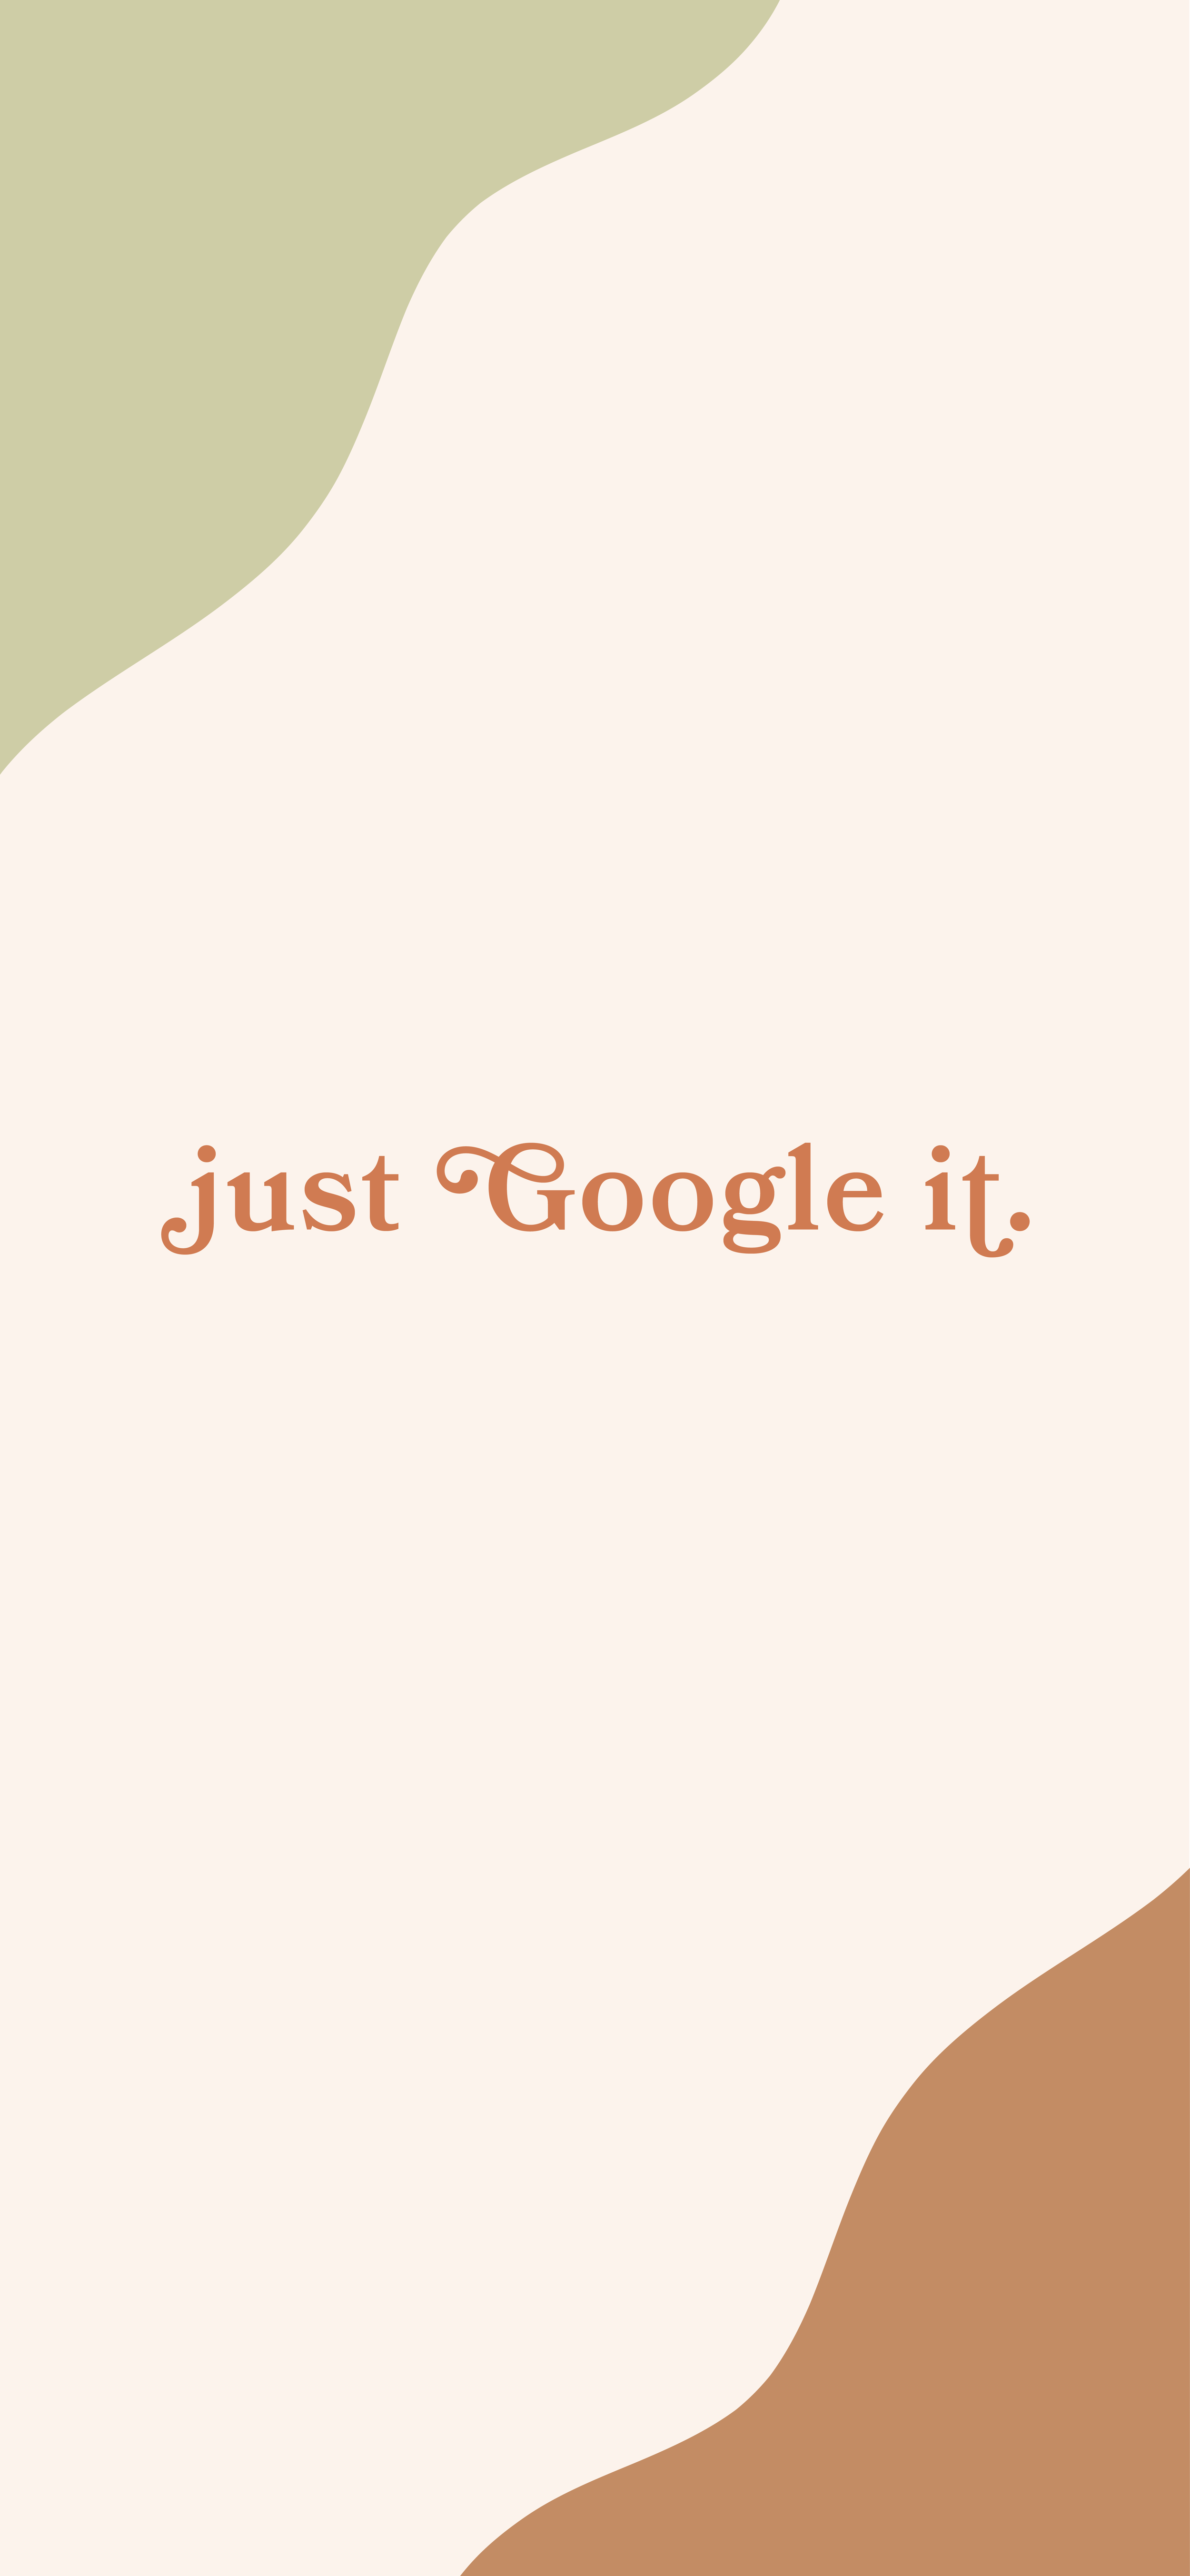 Just Google It-Mobile-05.png